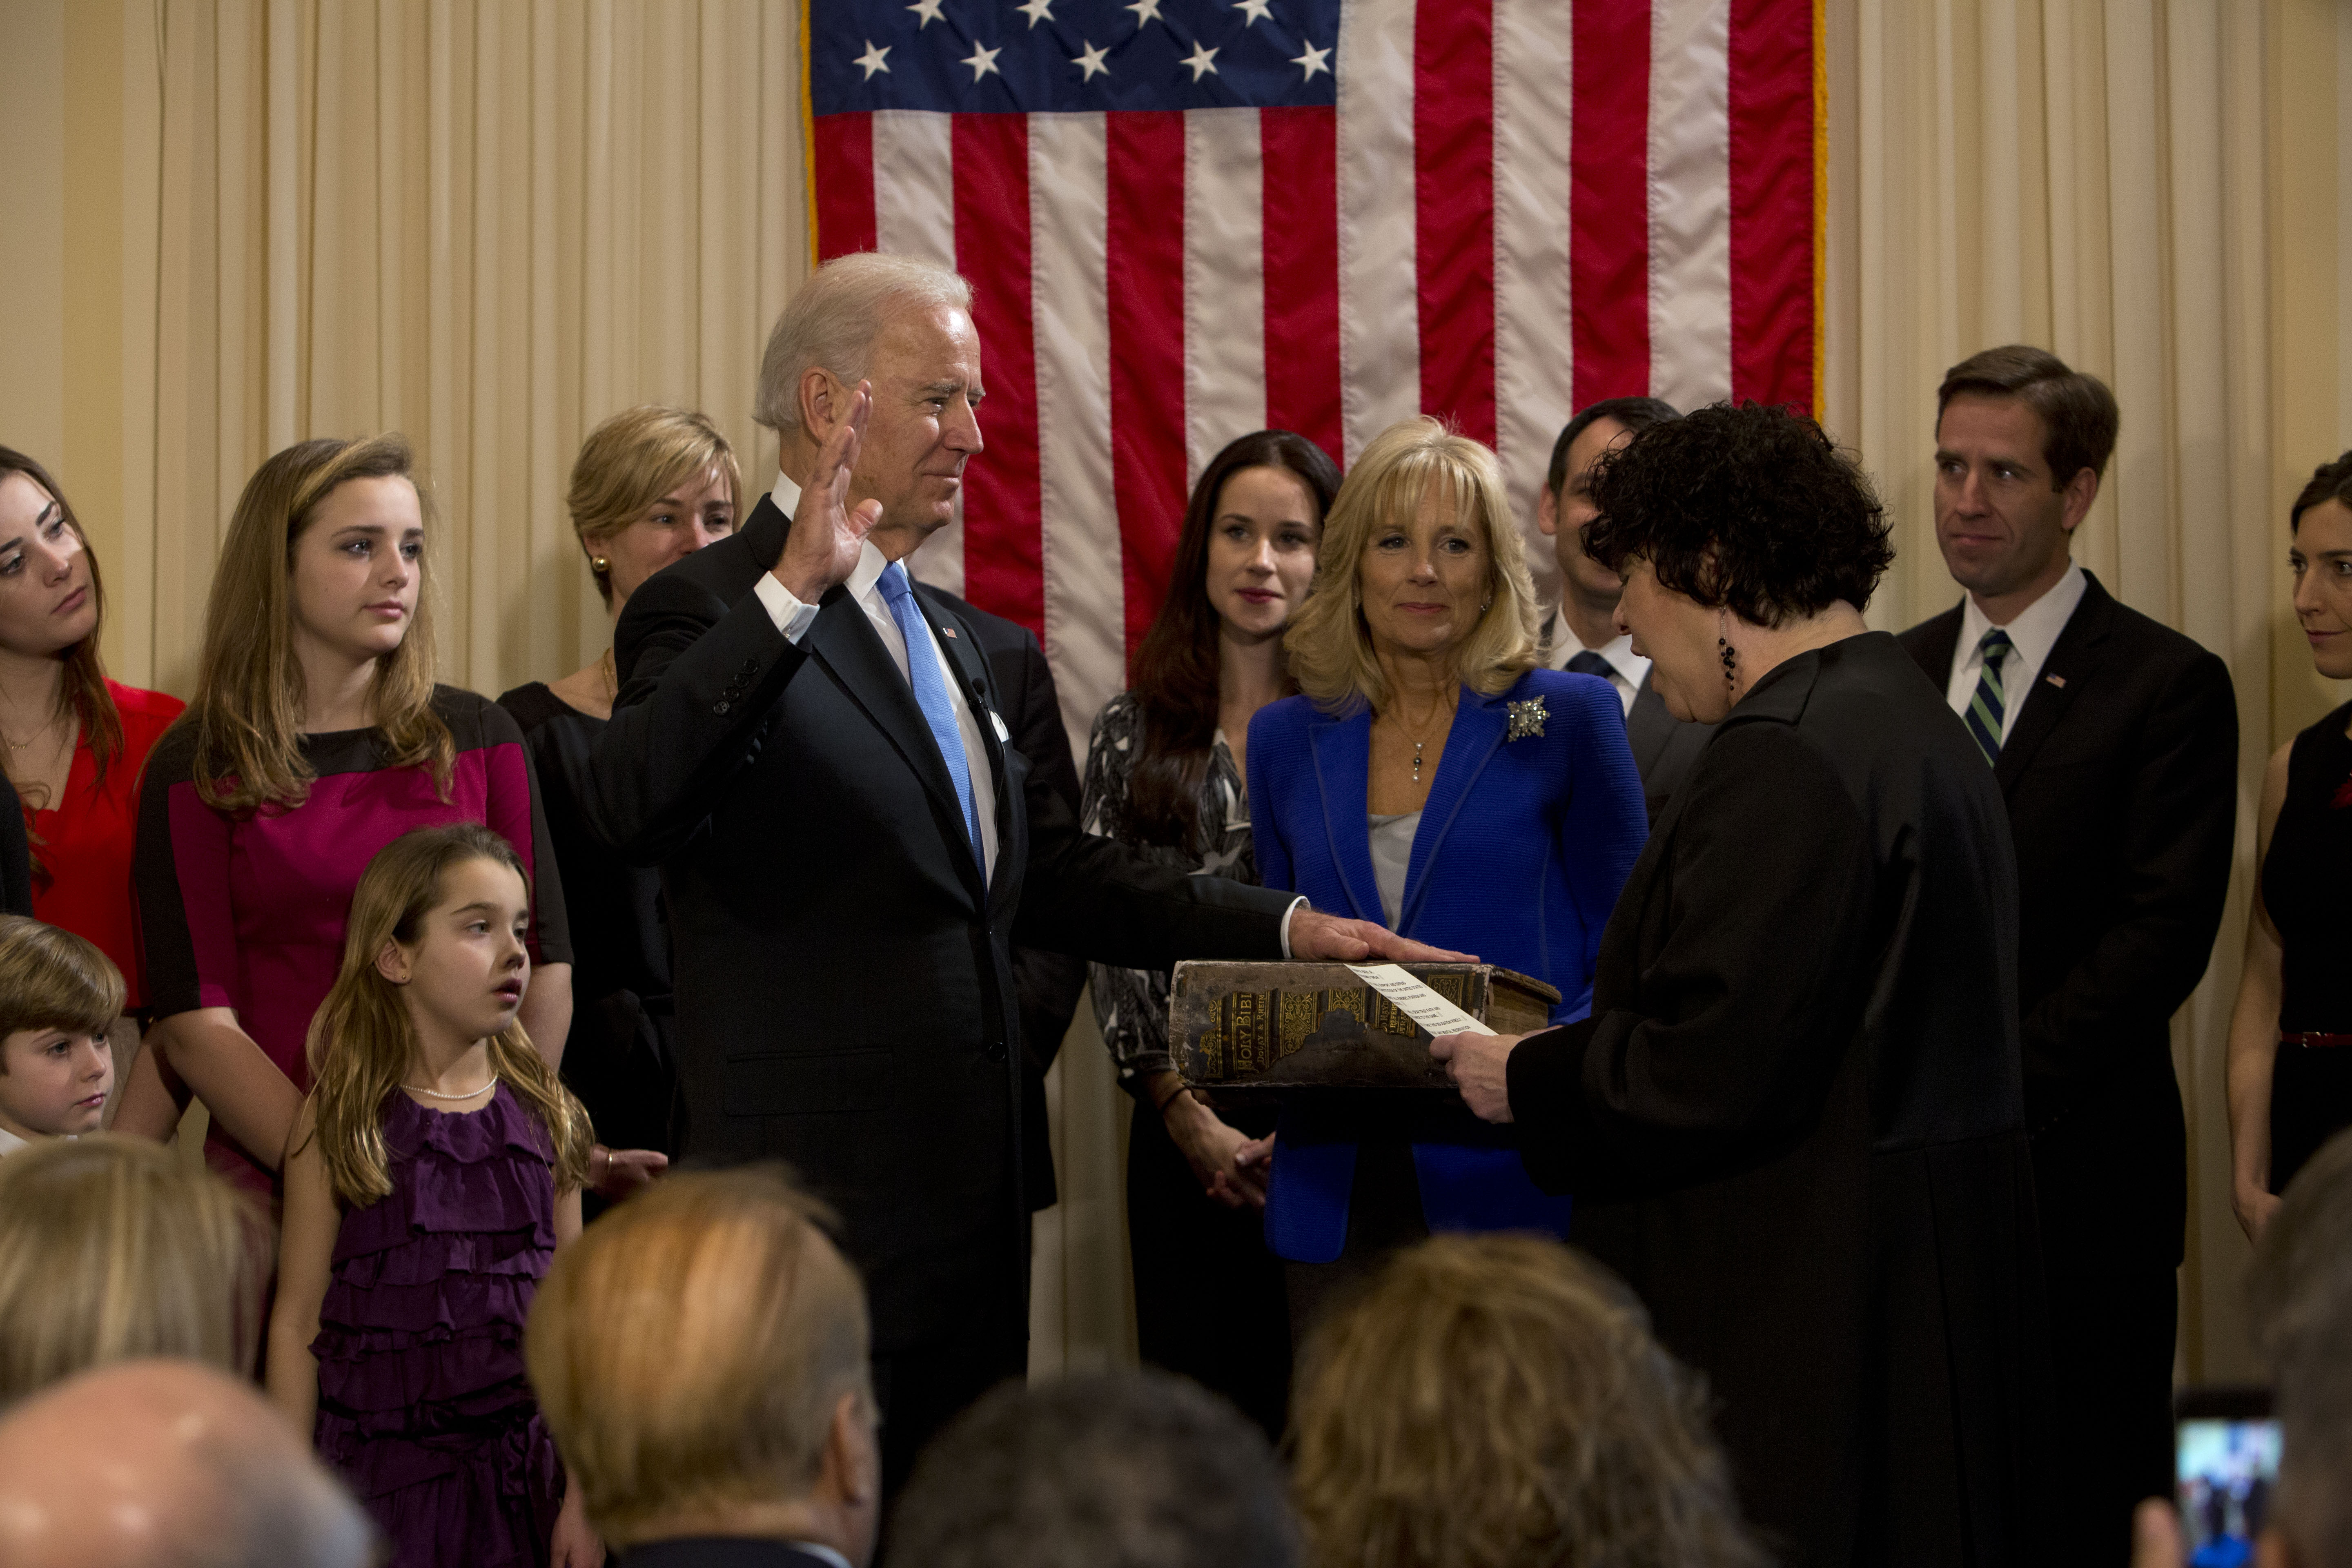 Supreme Court Justice Sonya Sotomayor administers the oath of office to Vice President Joe Biden